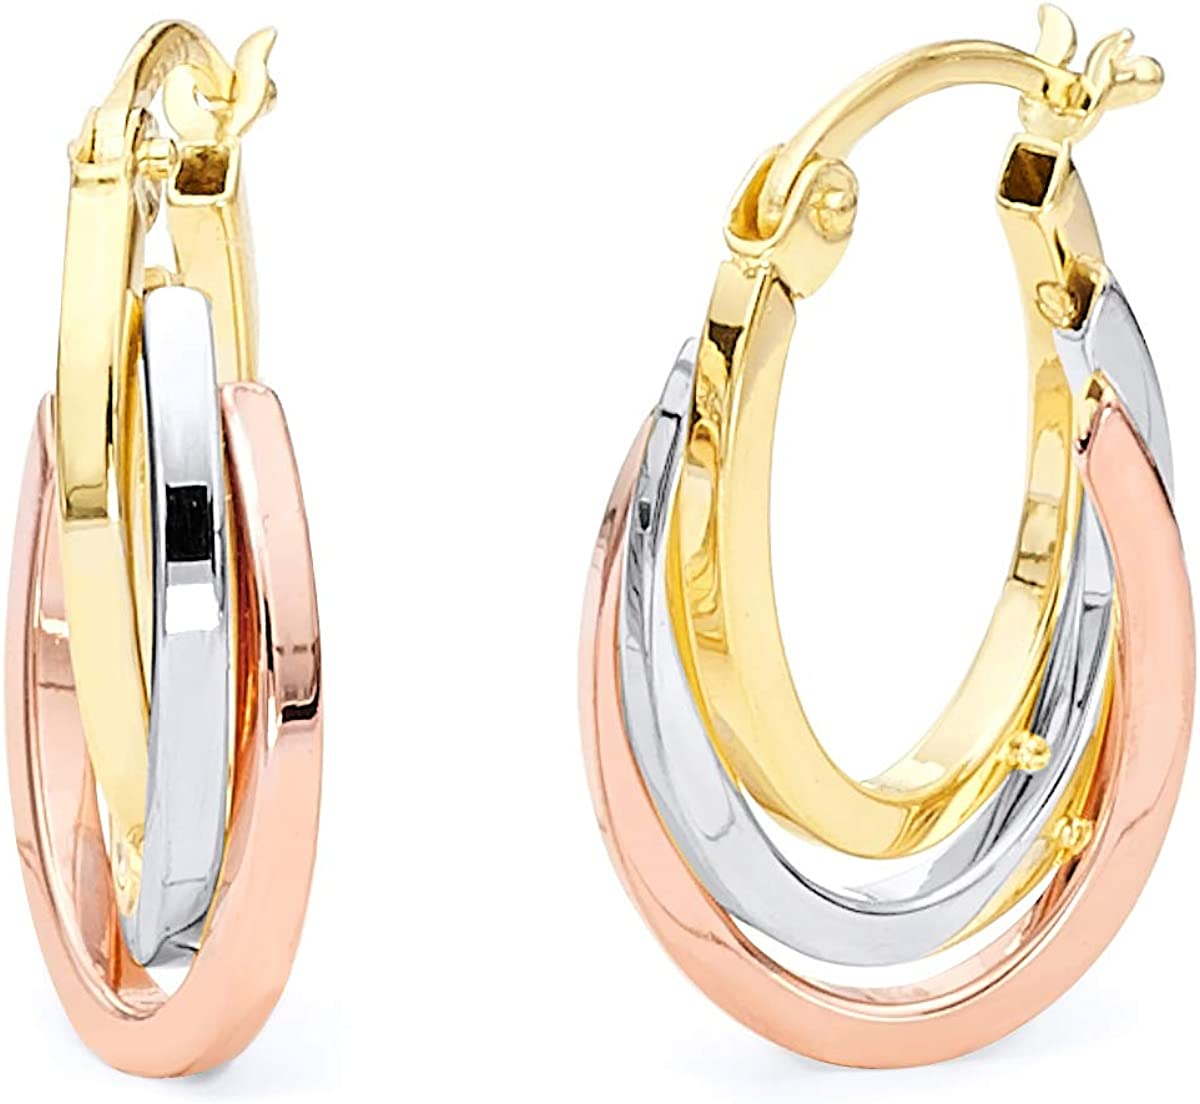 Wellingsale Ladies 14k 3 Max 50% OFF Tri Color Yellow and Gold Rose Regular discount Po White